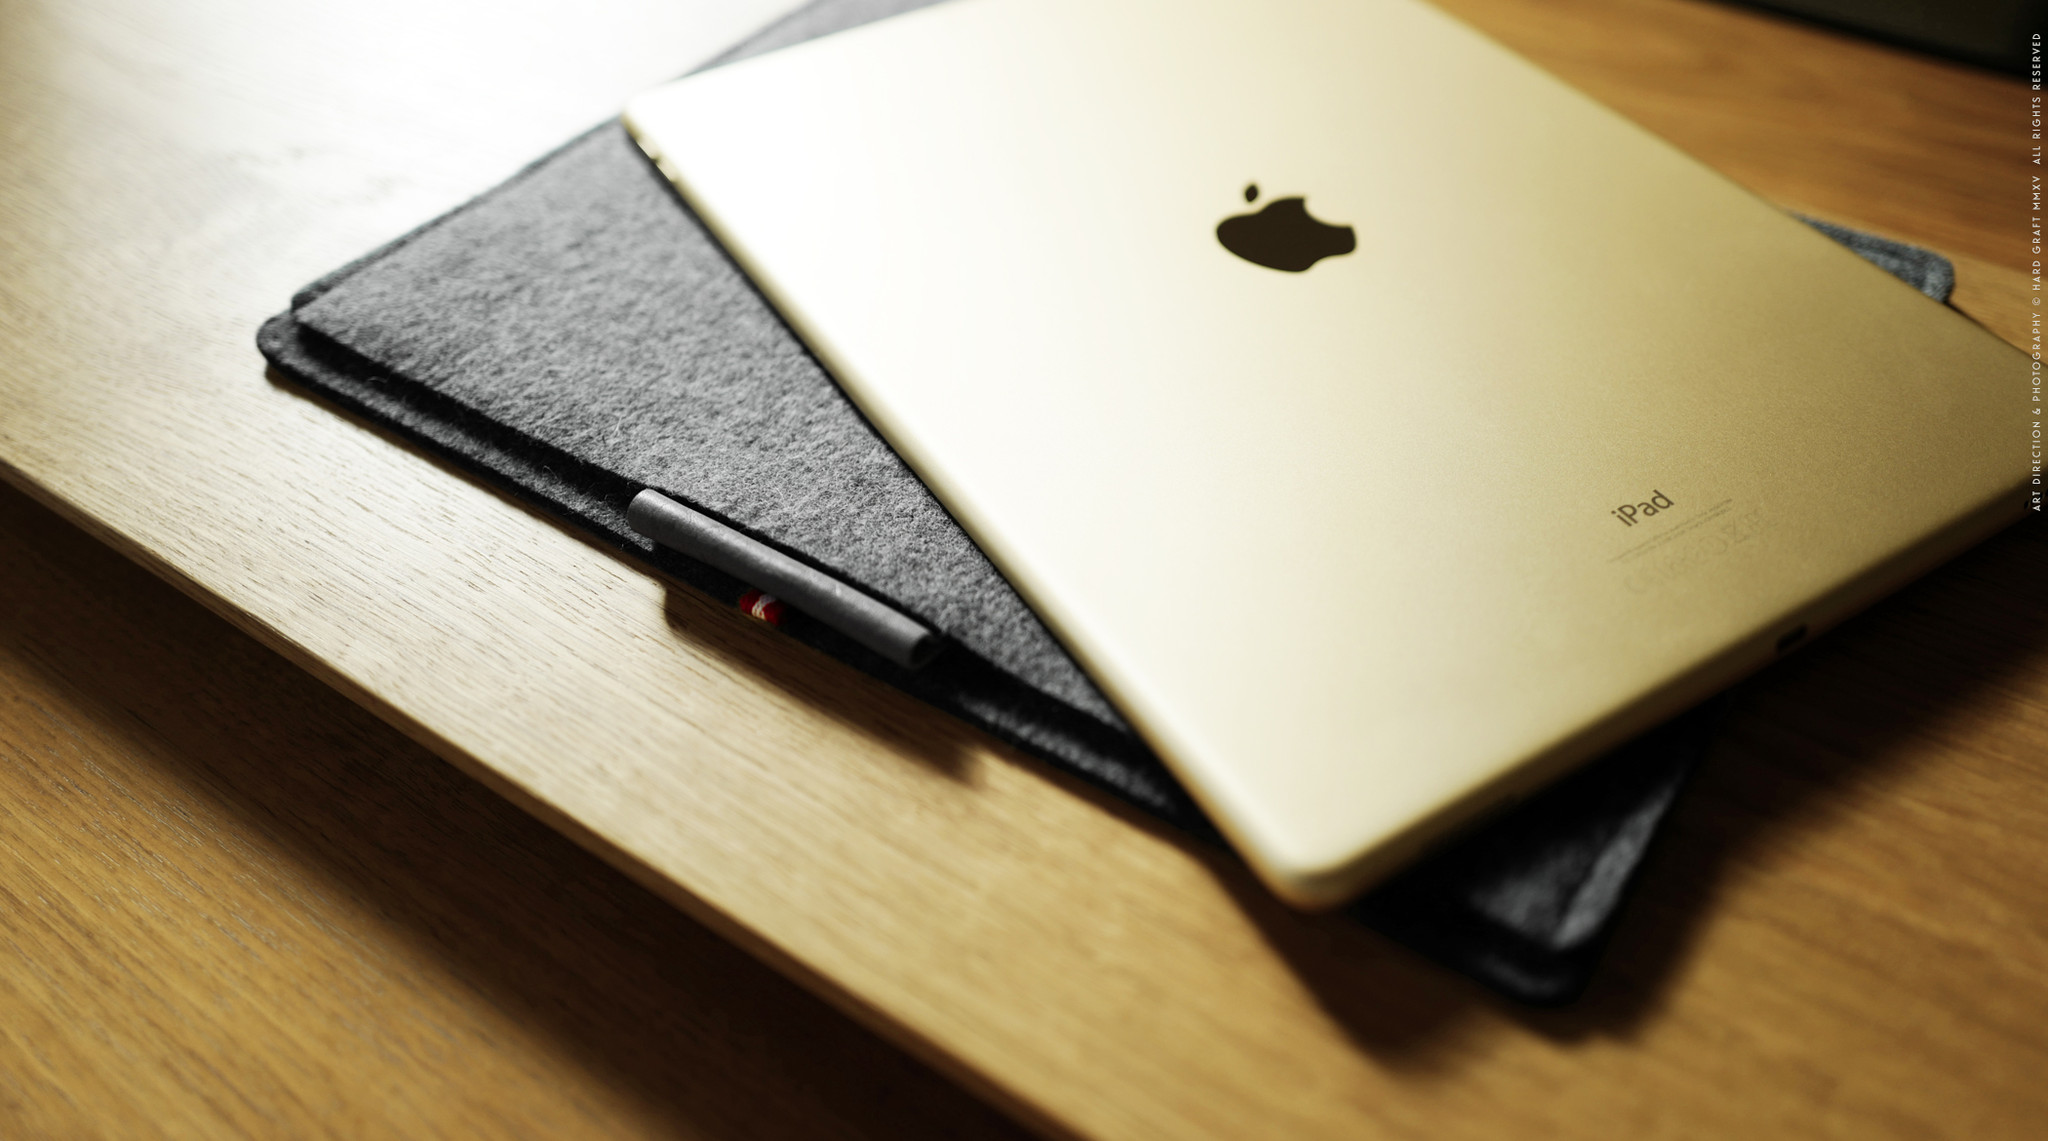 Skinny Fit iPad Pro Sleeve by HardGraft